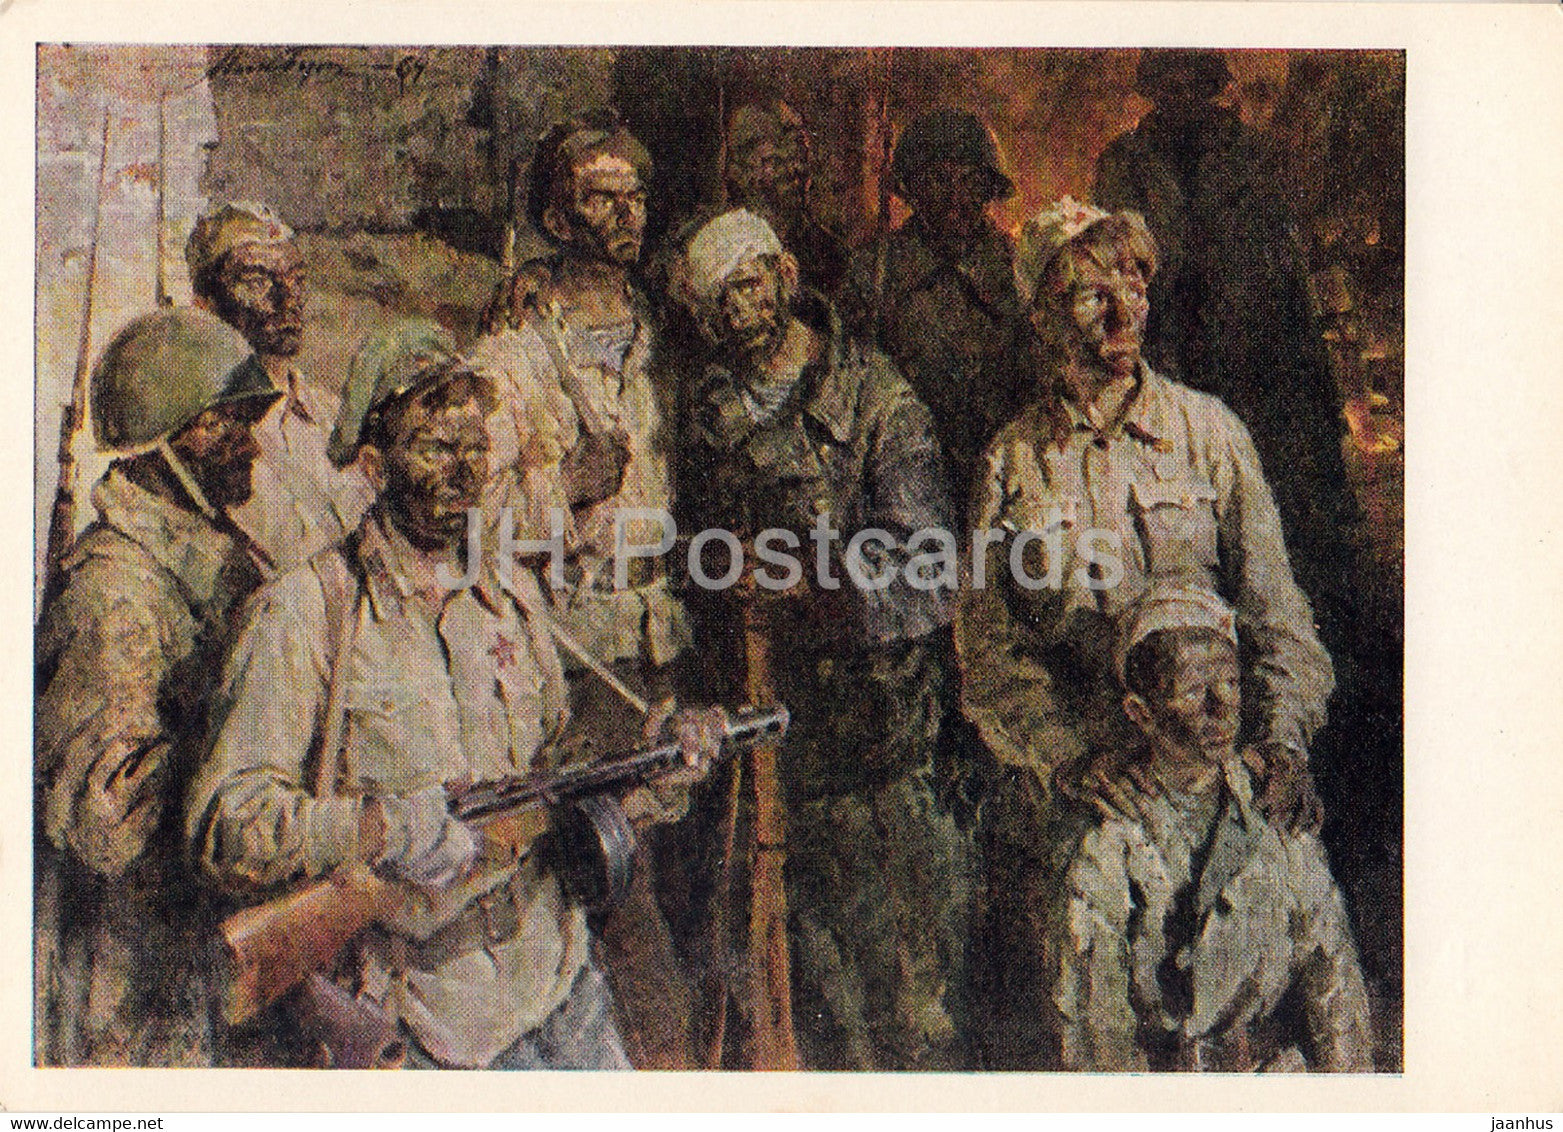 Guarding the World - painting by N. But - Underground garrison soldiers - military - art - 1965 - Russia USSR - unused - JH Postcards